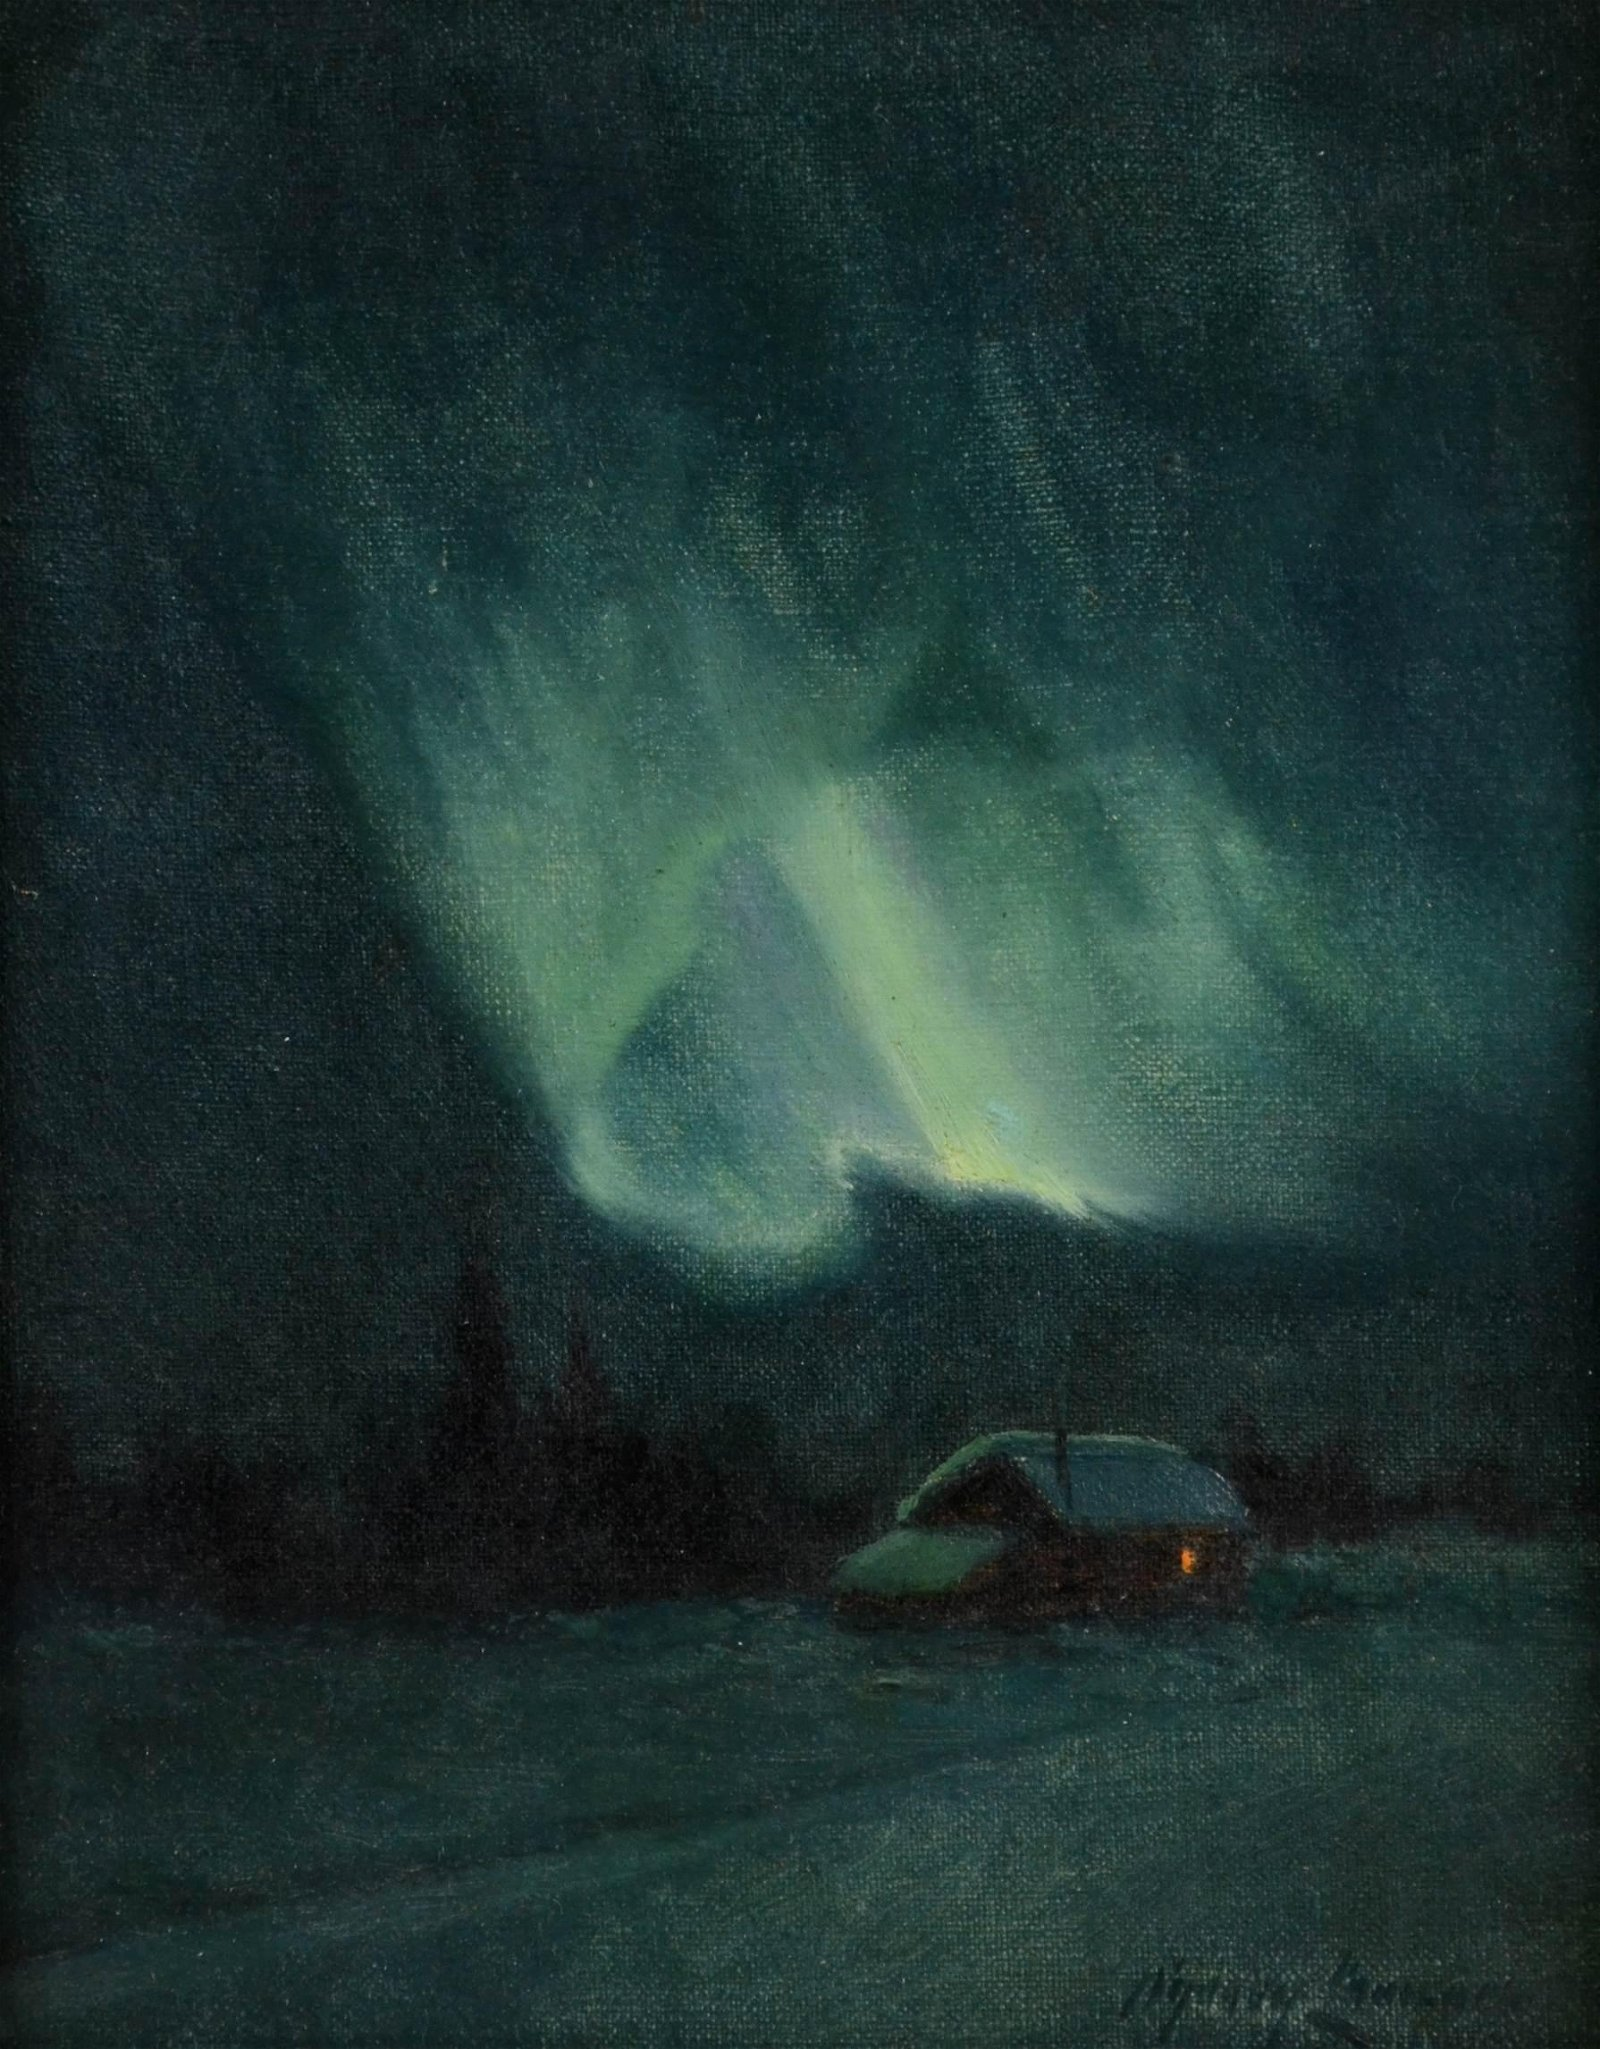 """Sydney Laurence Painting """"The Northern Lights"""""""